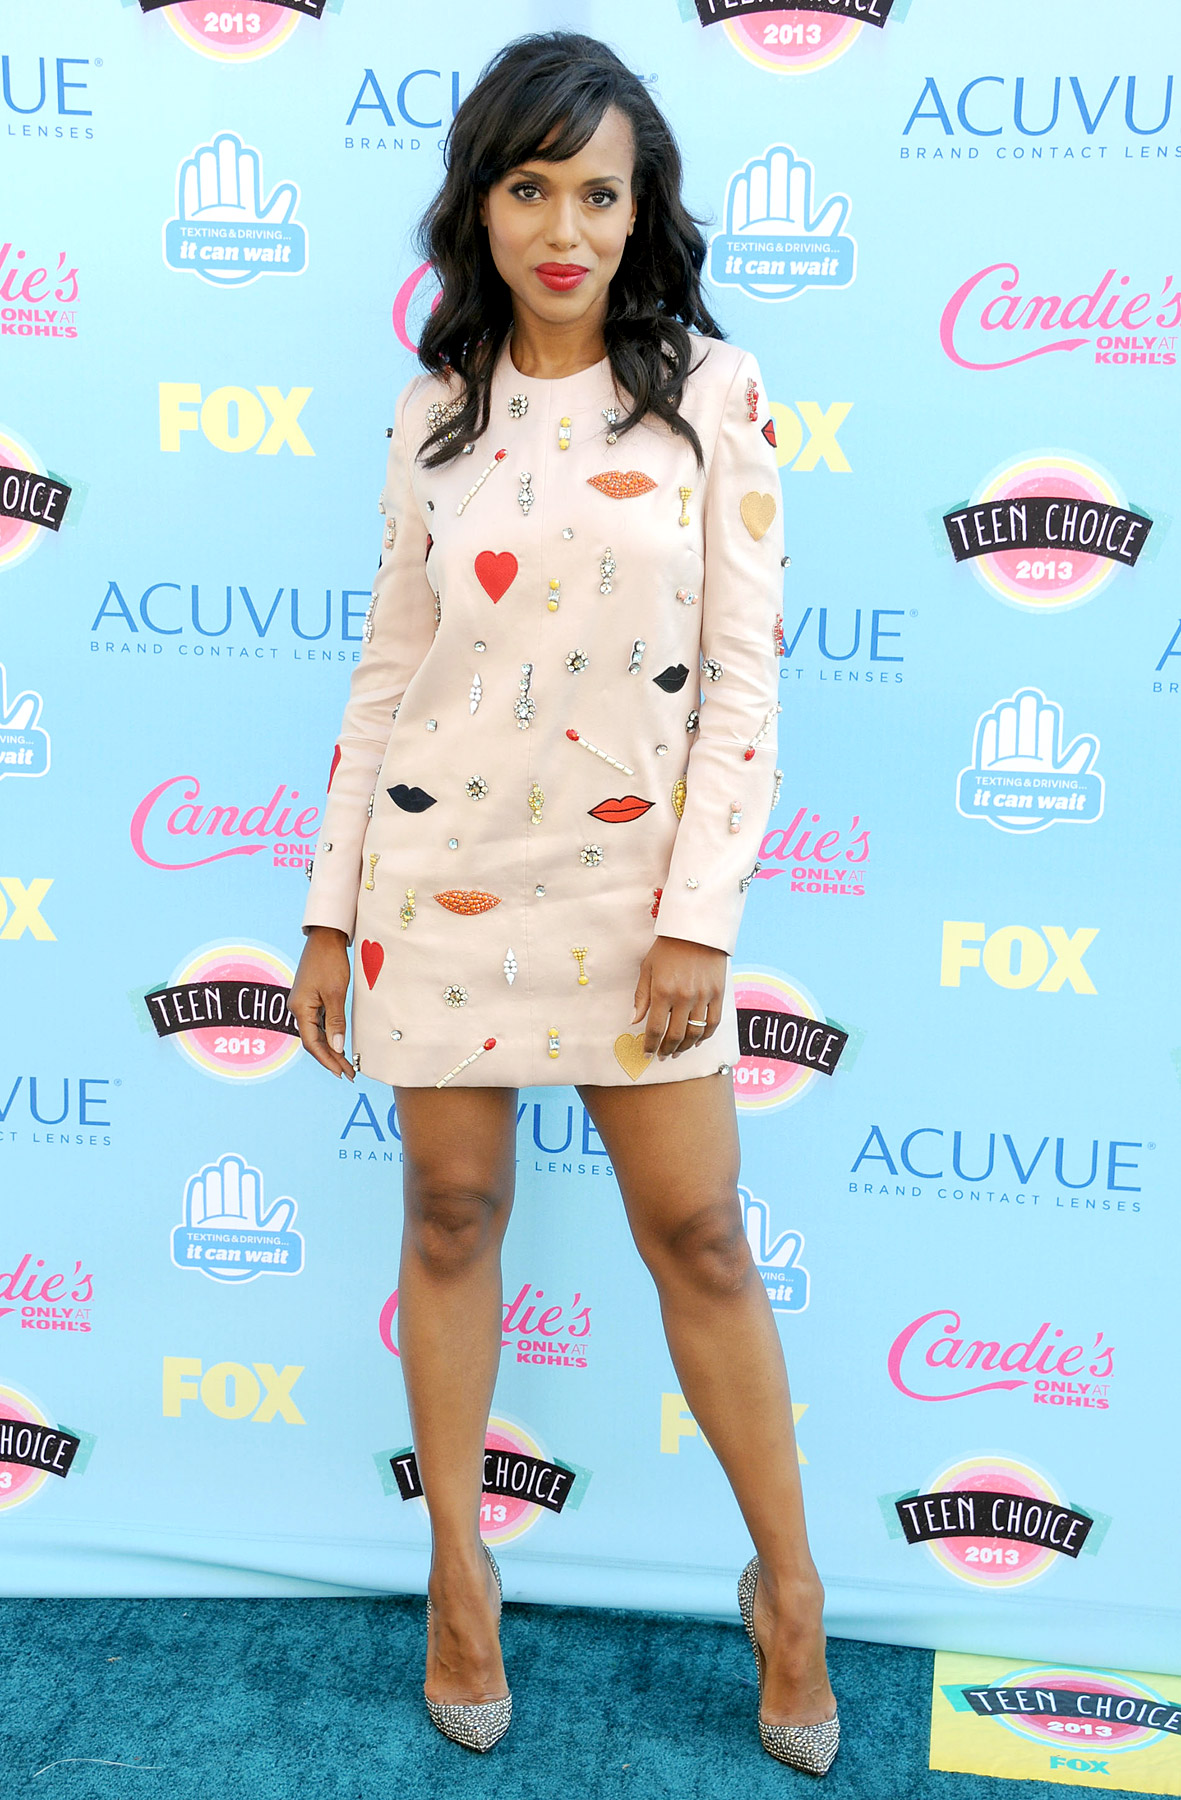 Lips, galore! Olivia Pope made a stylish entrance in a light pink Stella McCartney dress with lips and heart embellishments while attending the 2013 Teen Choice Awards in L.A. She also went for a bold red lip, and donned Christian Louboutin shoes and a Bottega Veneta bag.